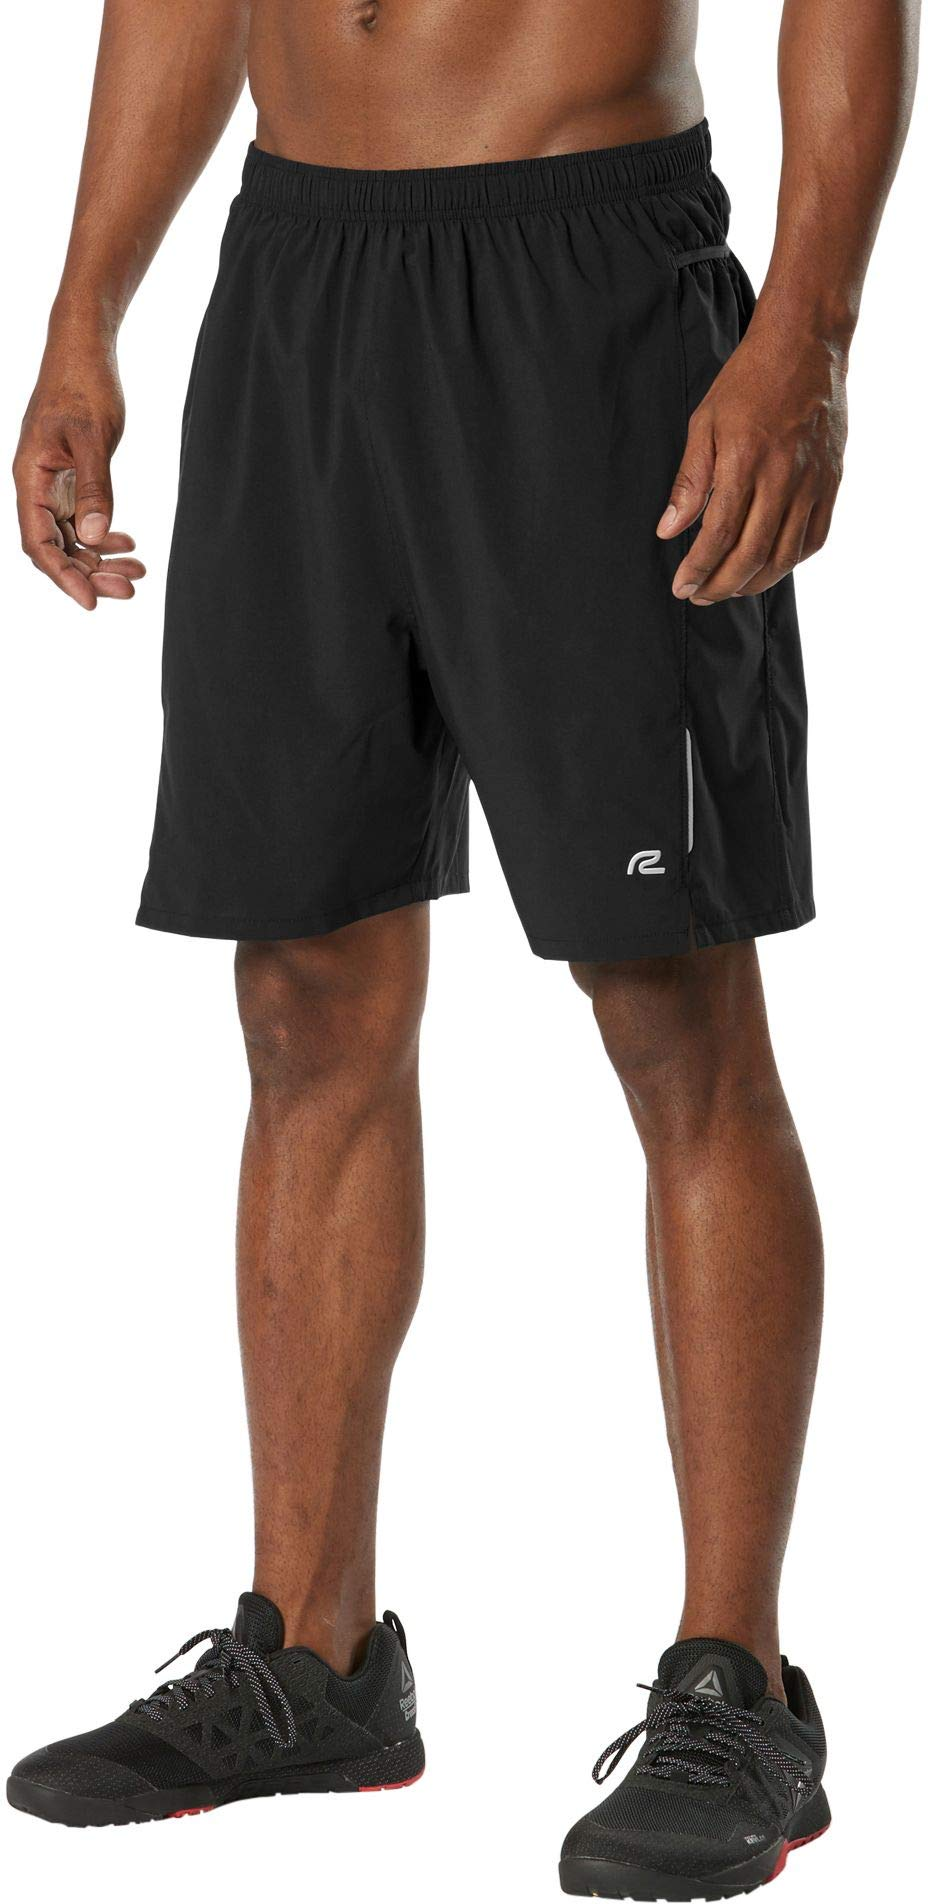 R-Gear Men's Workout Running Shorts with Six Pockets and Built-in Liner | 3-Inch and 7-Inch | Stash Solver